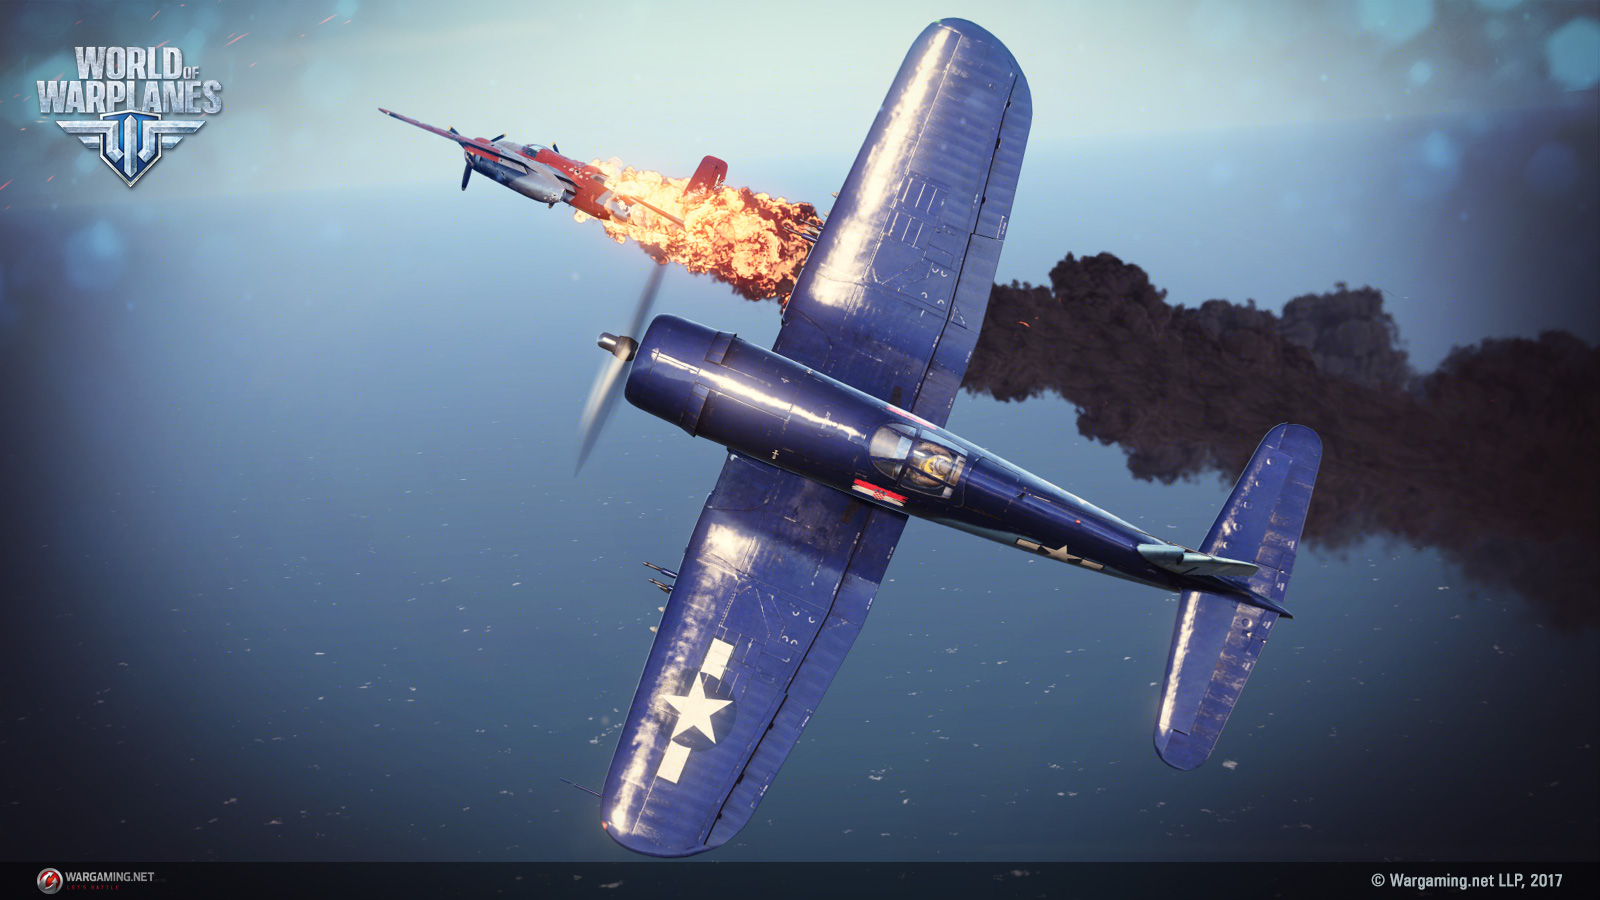 Breathtaking air battles with planes of the golden era